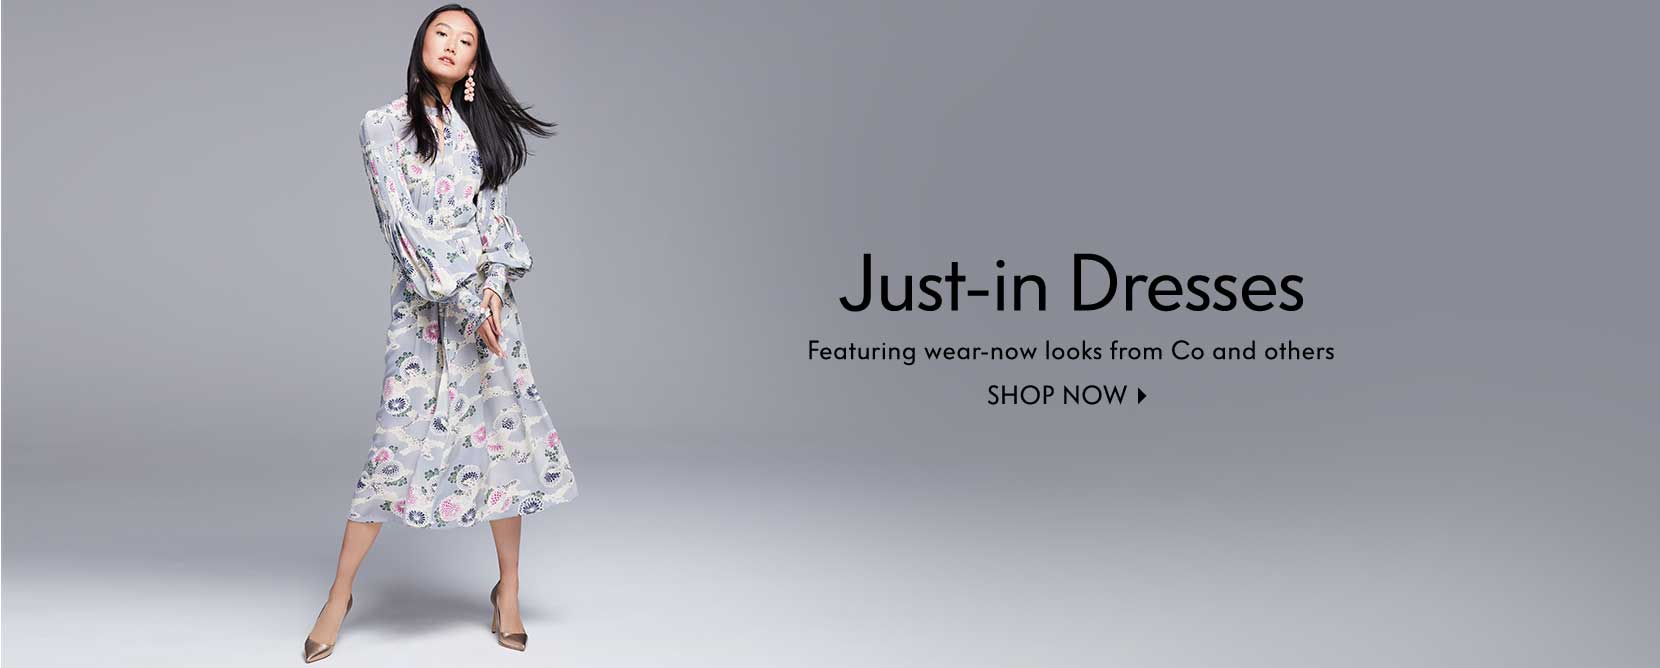 Just-in Dresses - Featuring wear-now looks from Co and others